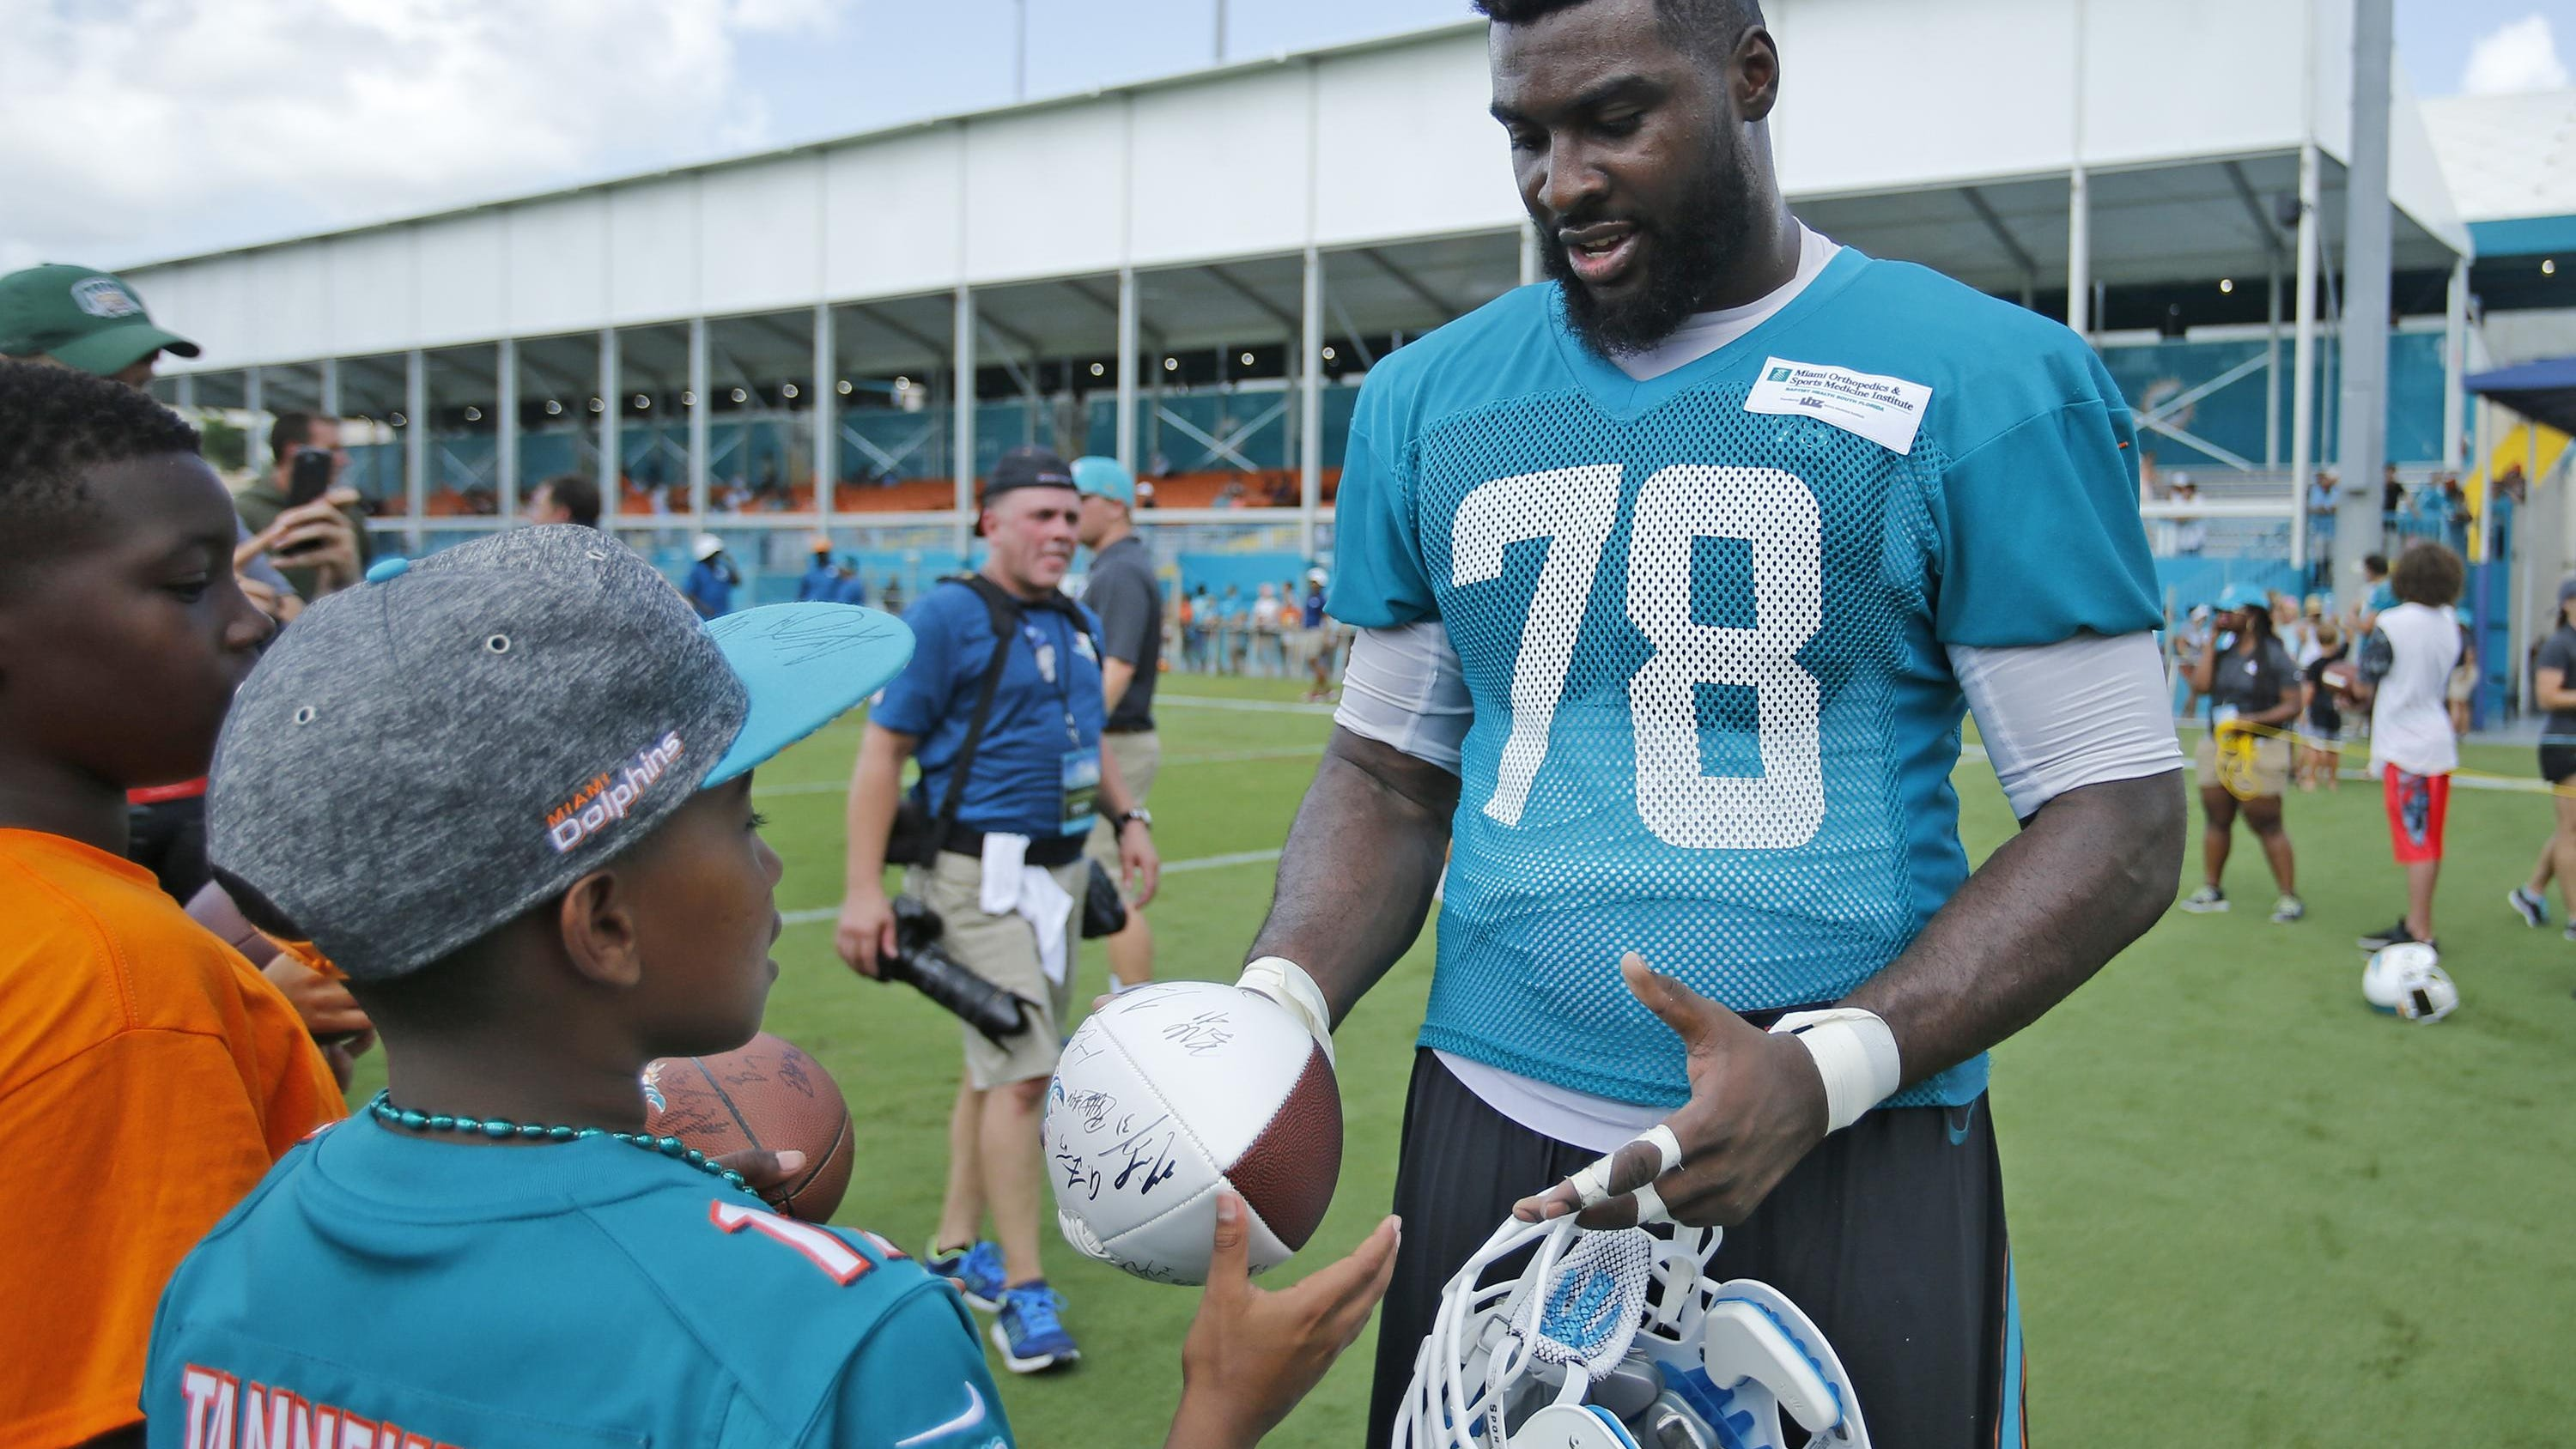 Jerseys NFL Online - Miami Dolphins News, Photos, Stats, Rankings - USA TODAY